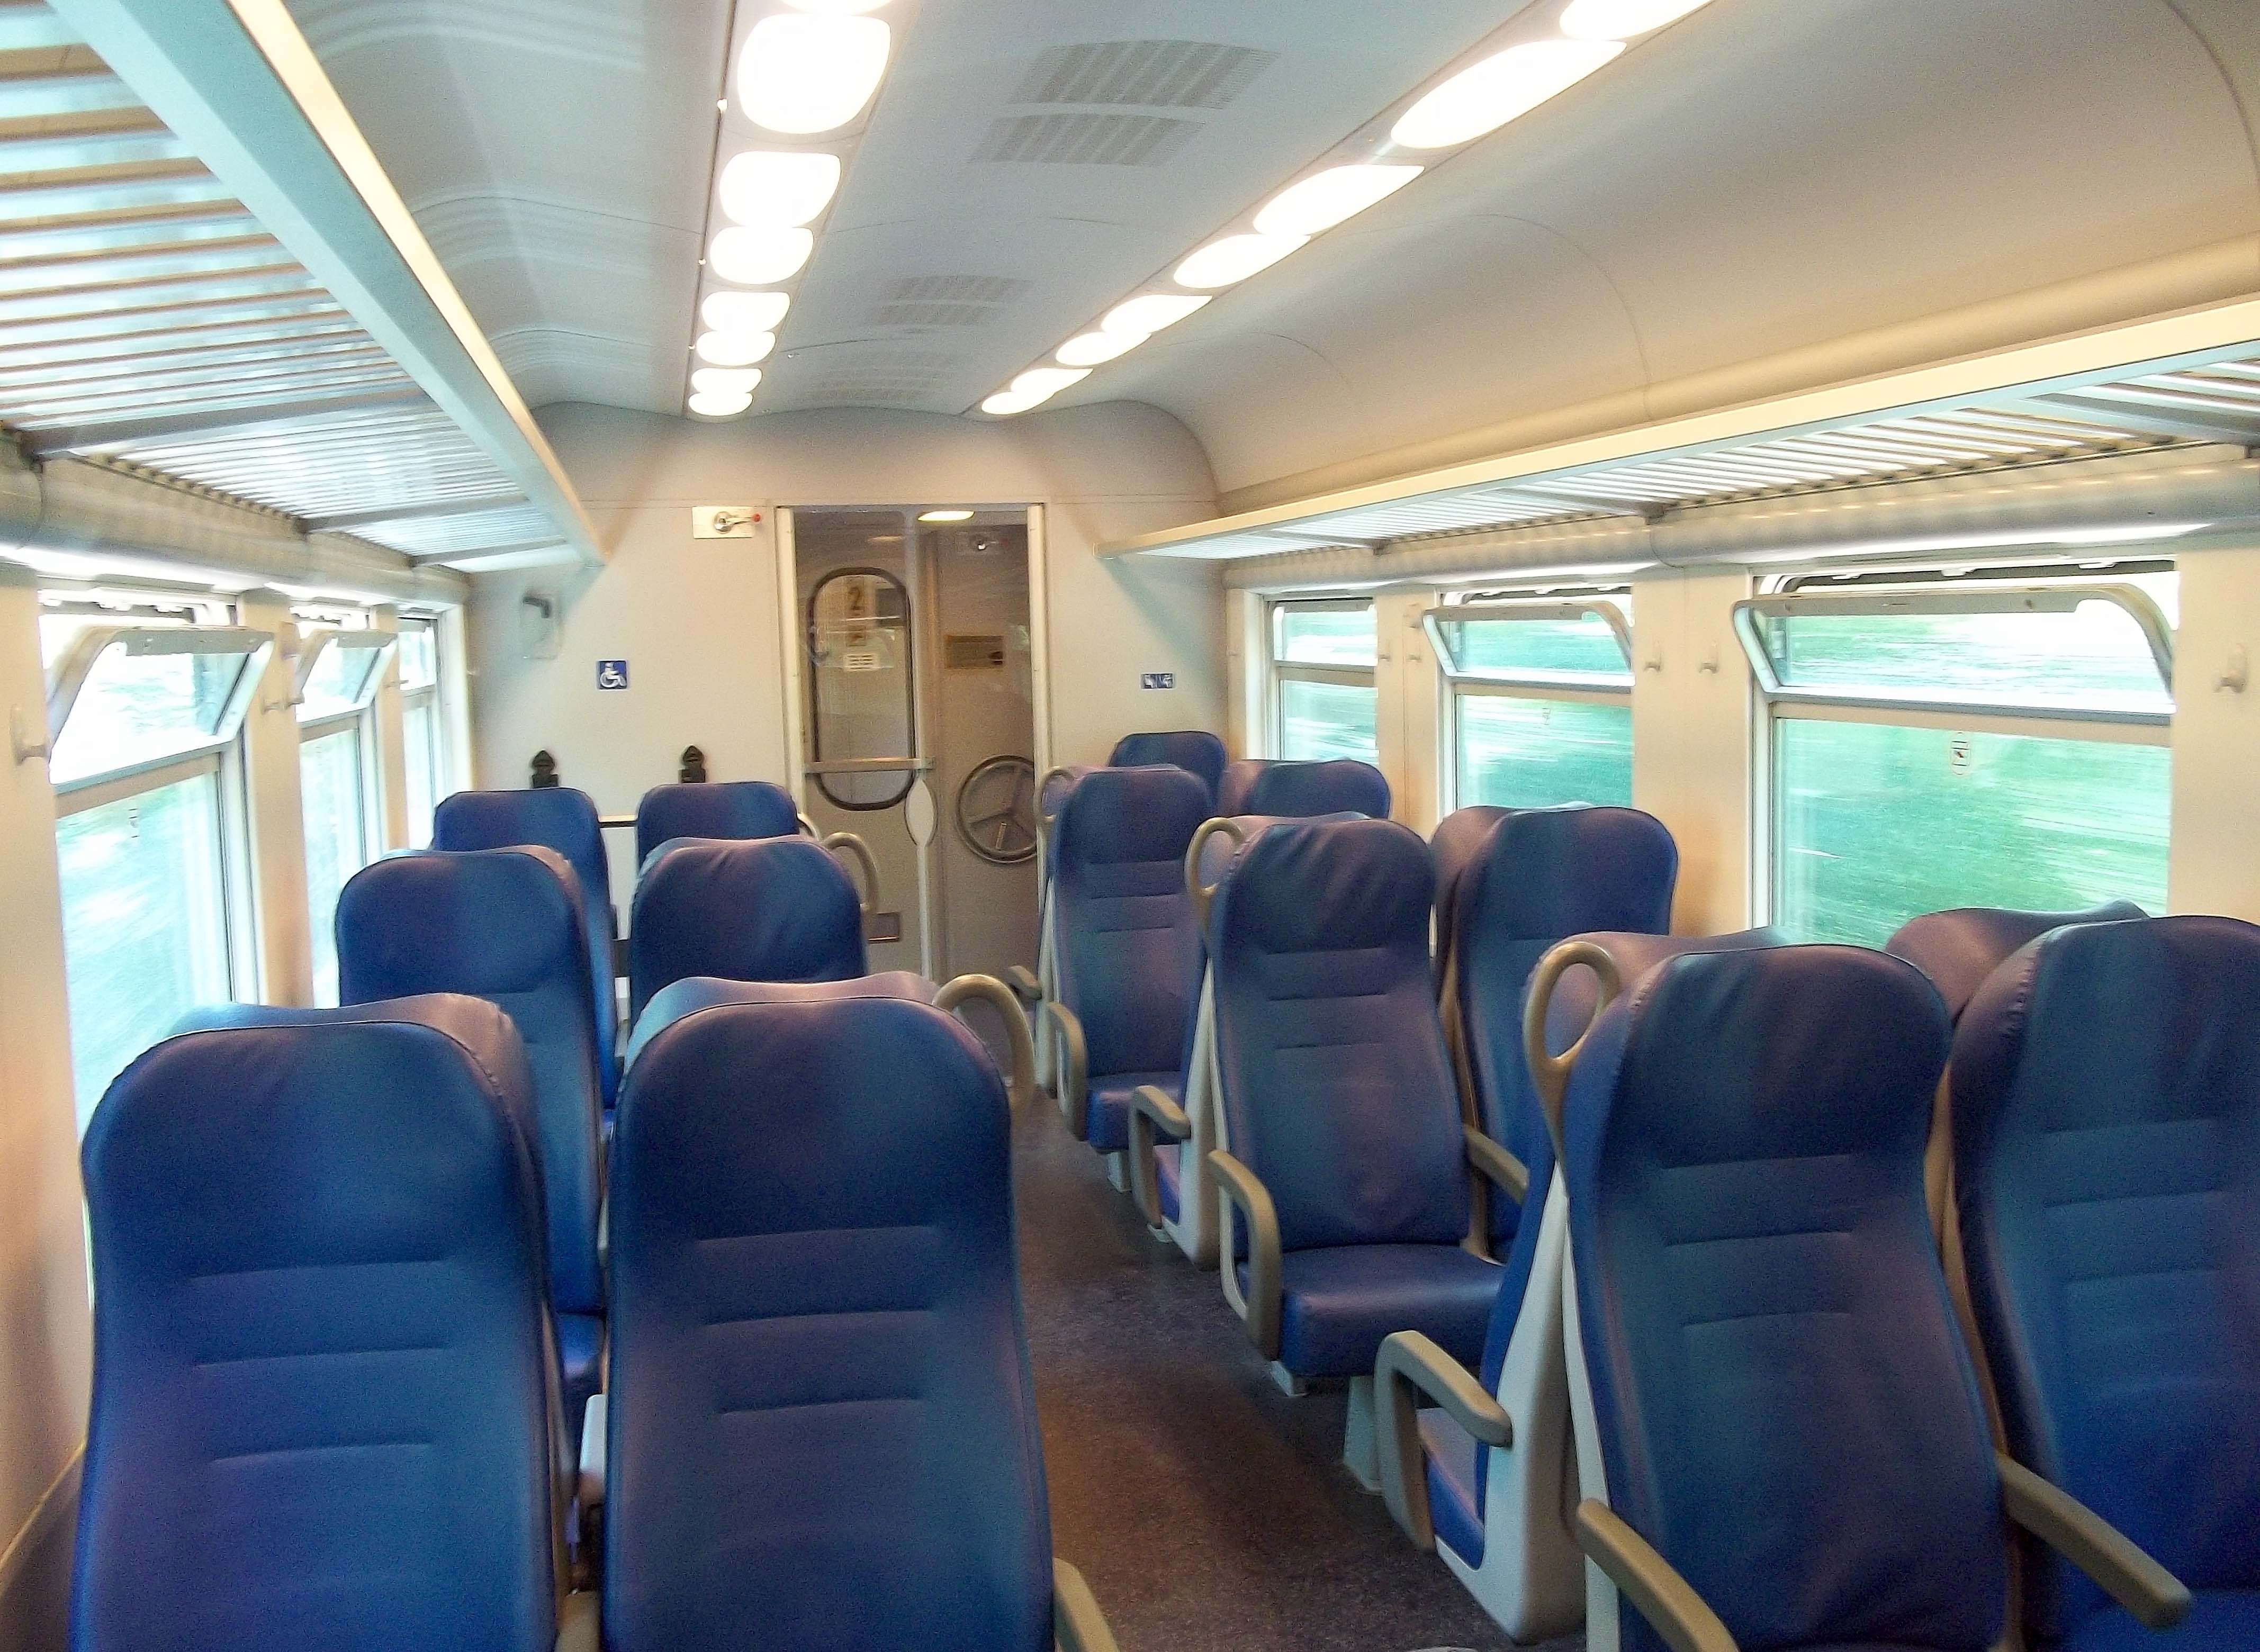 Interior of a train in Italy